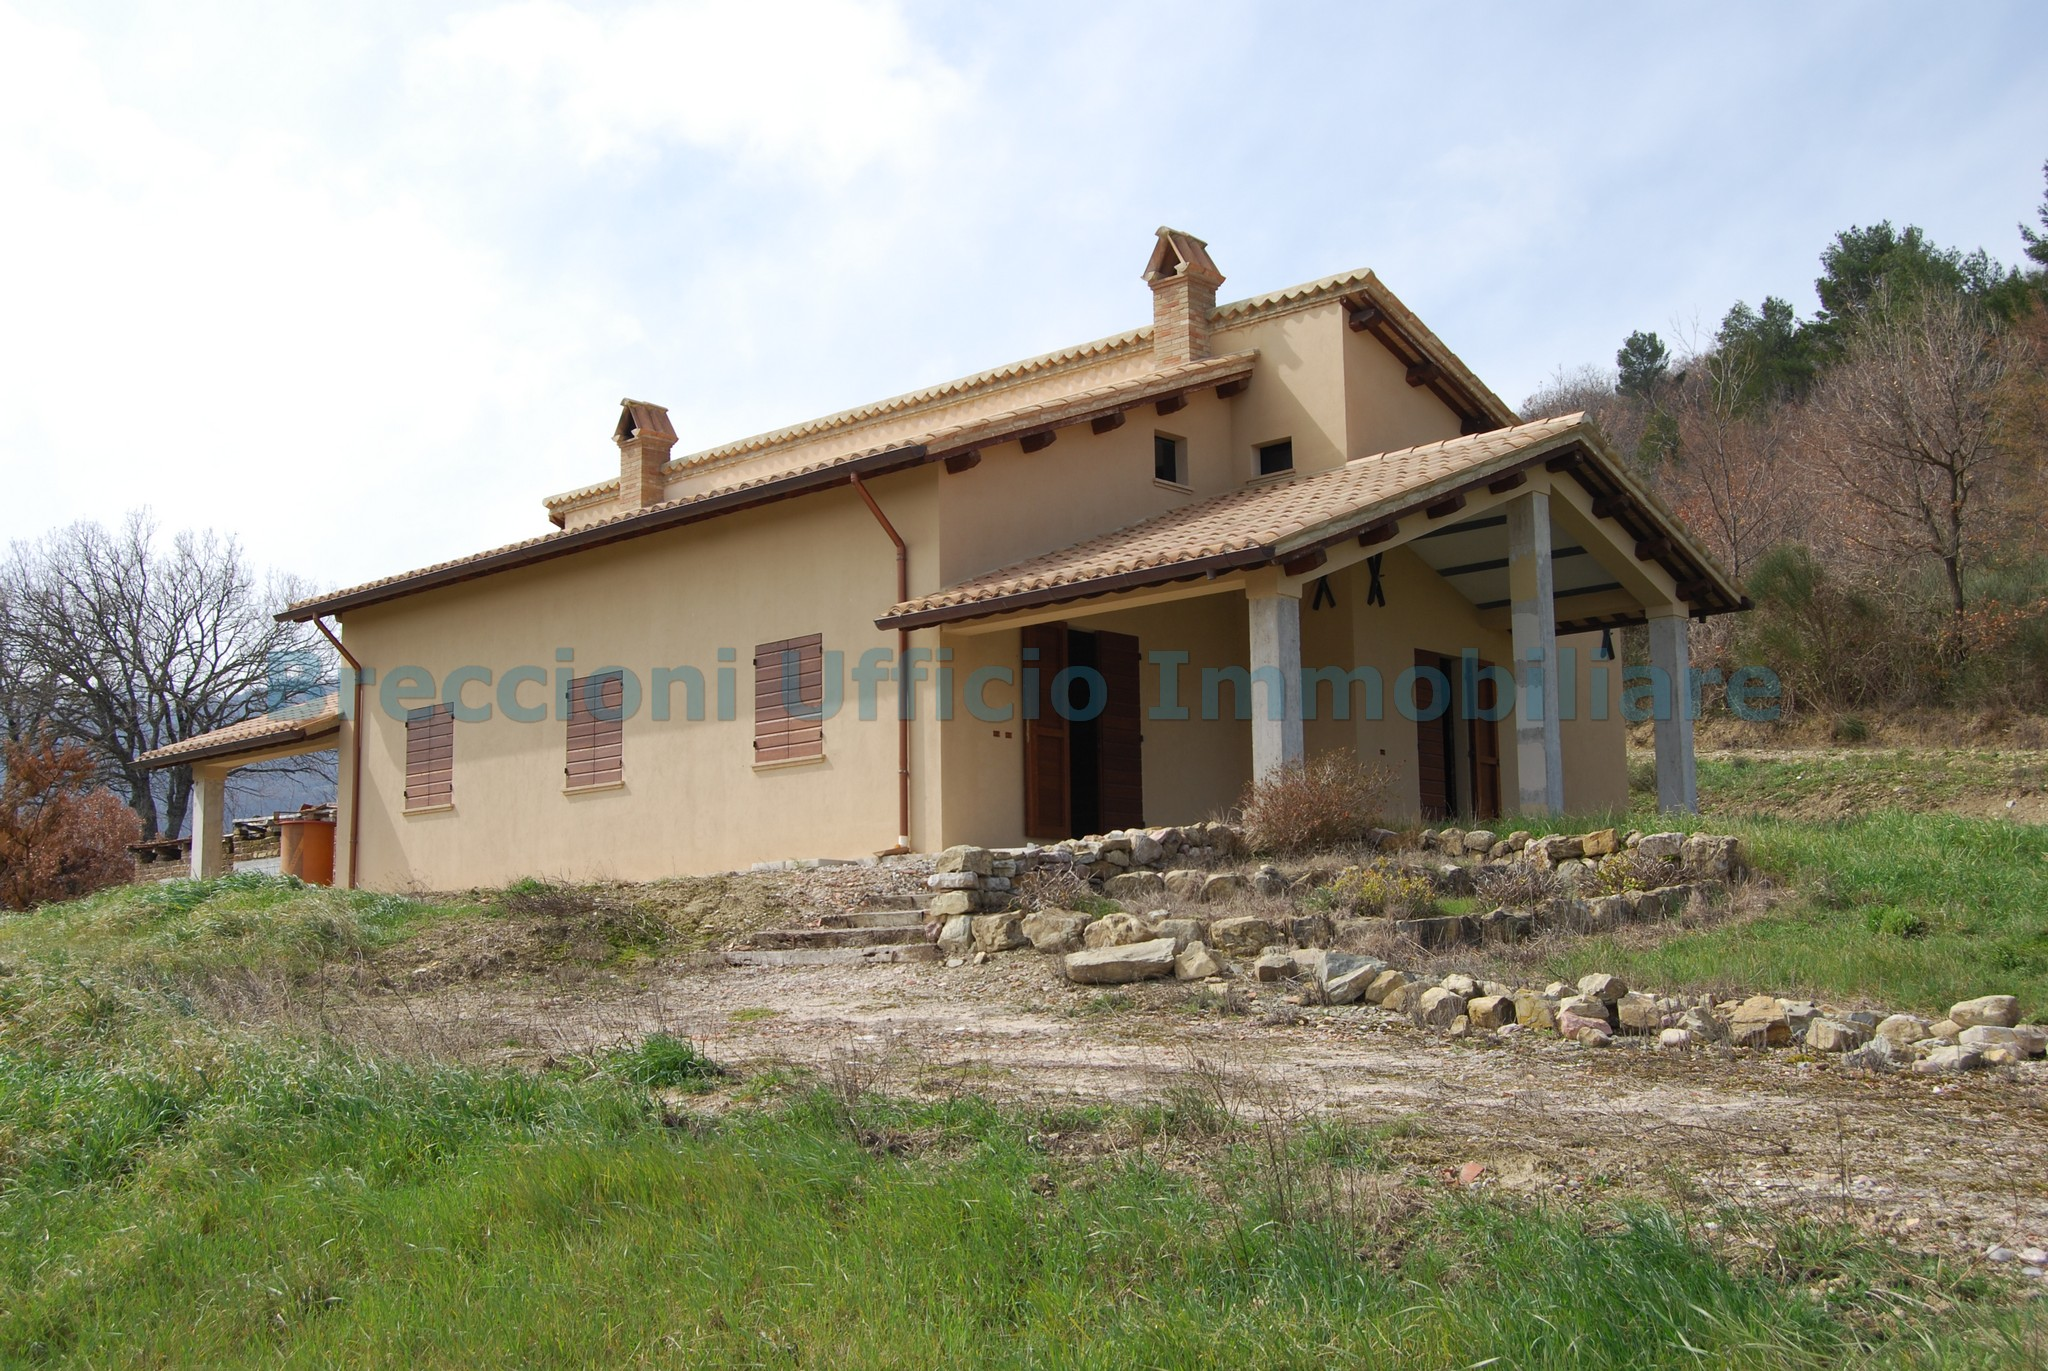 Italian Farmhouses For Sale For Sale Farmhouse Giano Dell 39umbria Perugia Italy